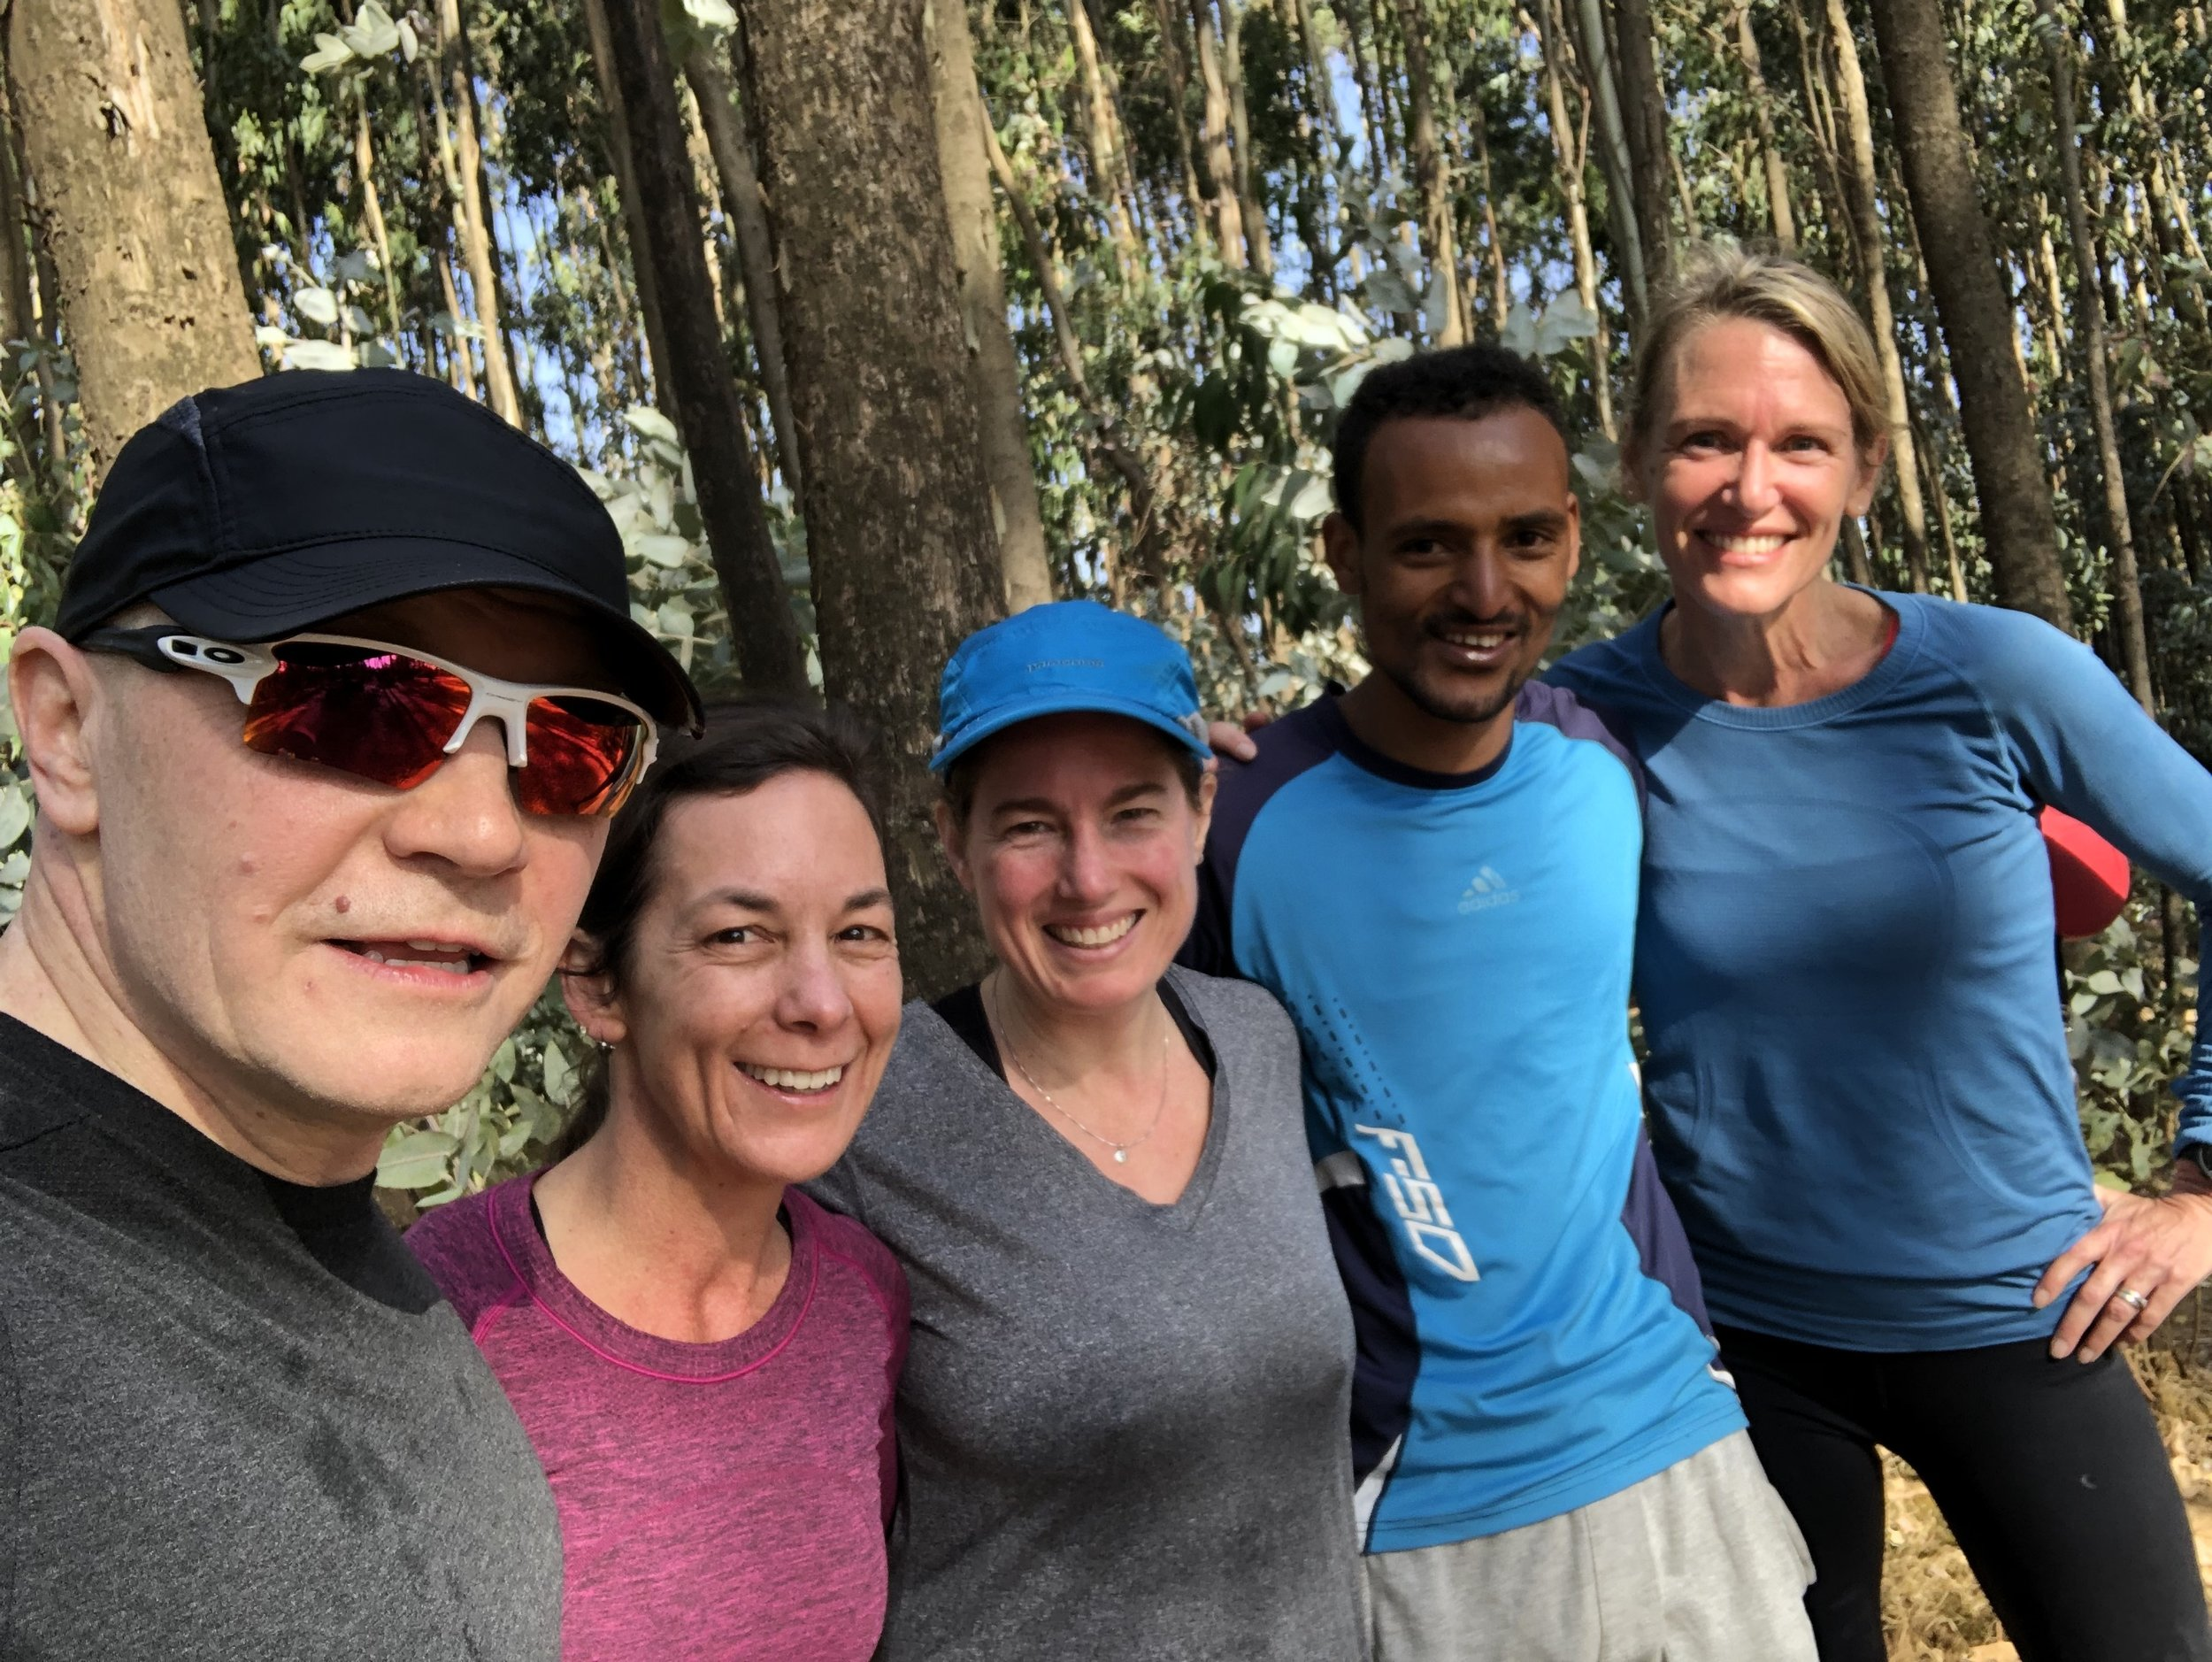 Post-run smiles with our guide.